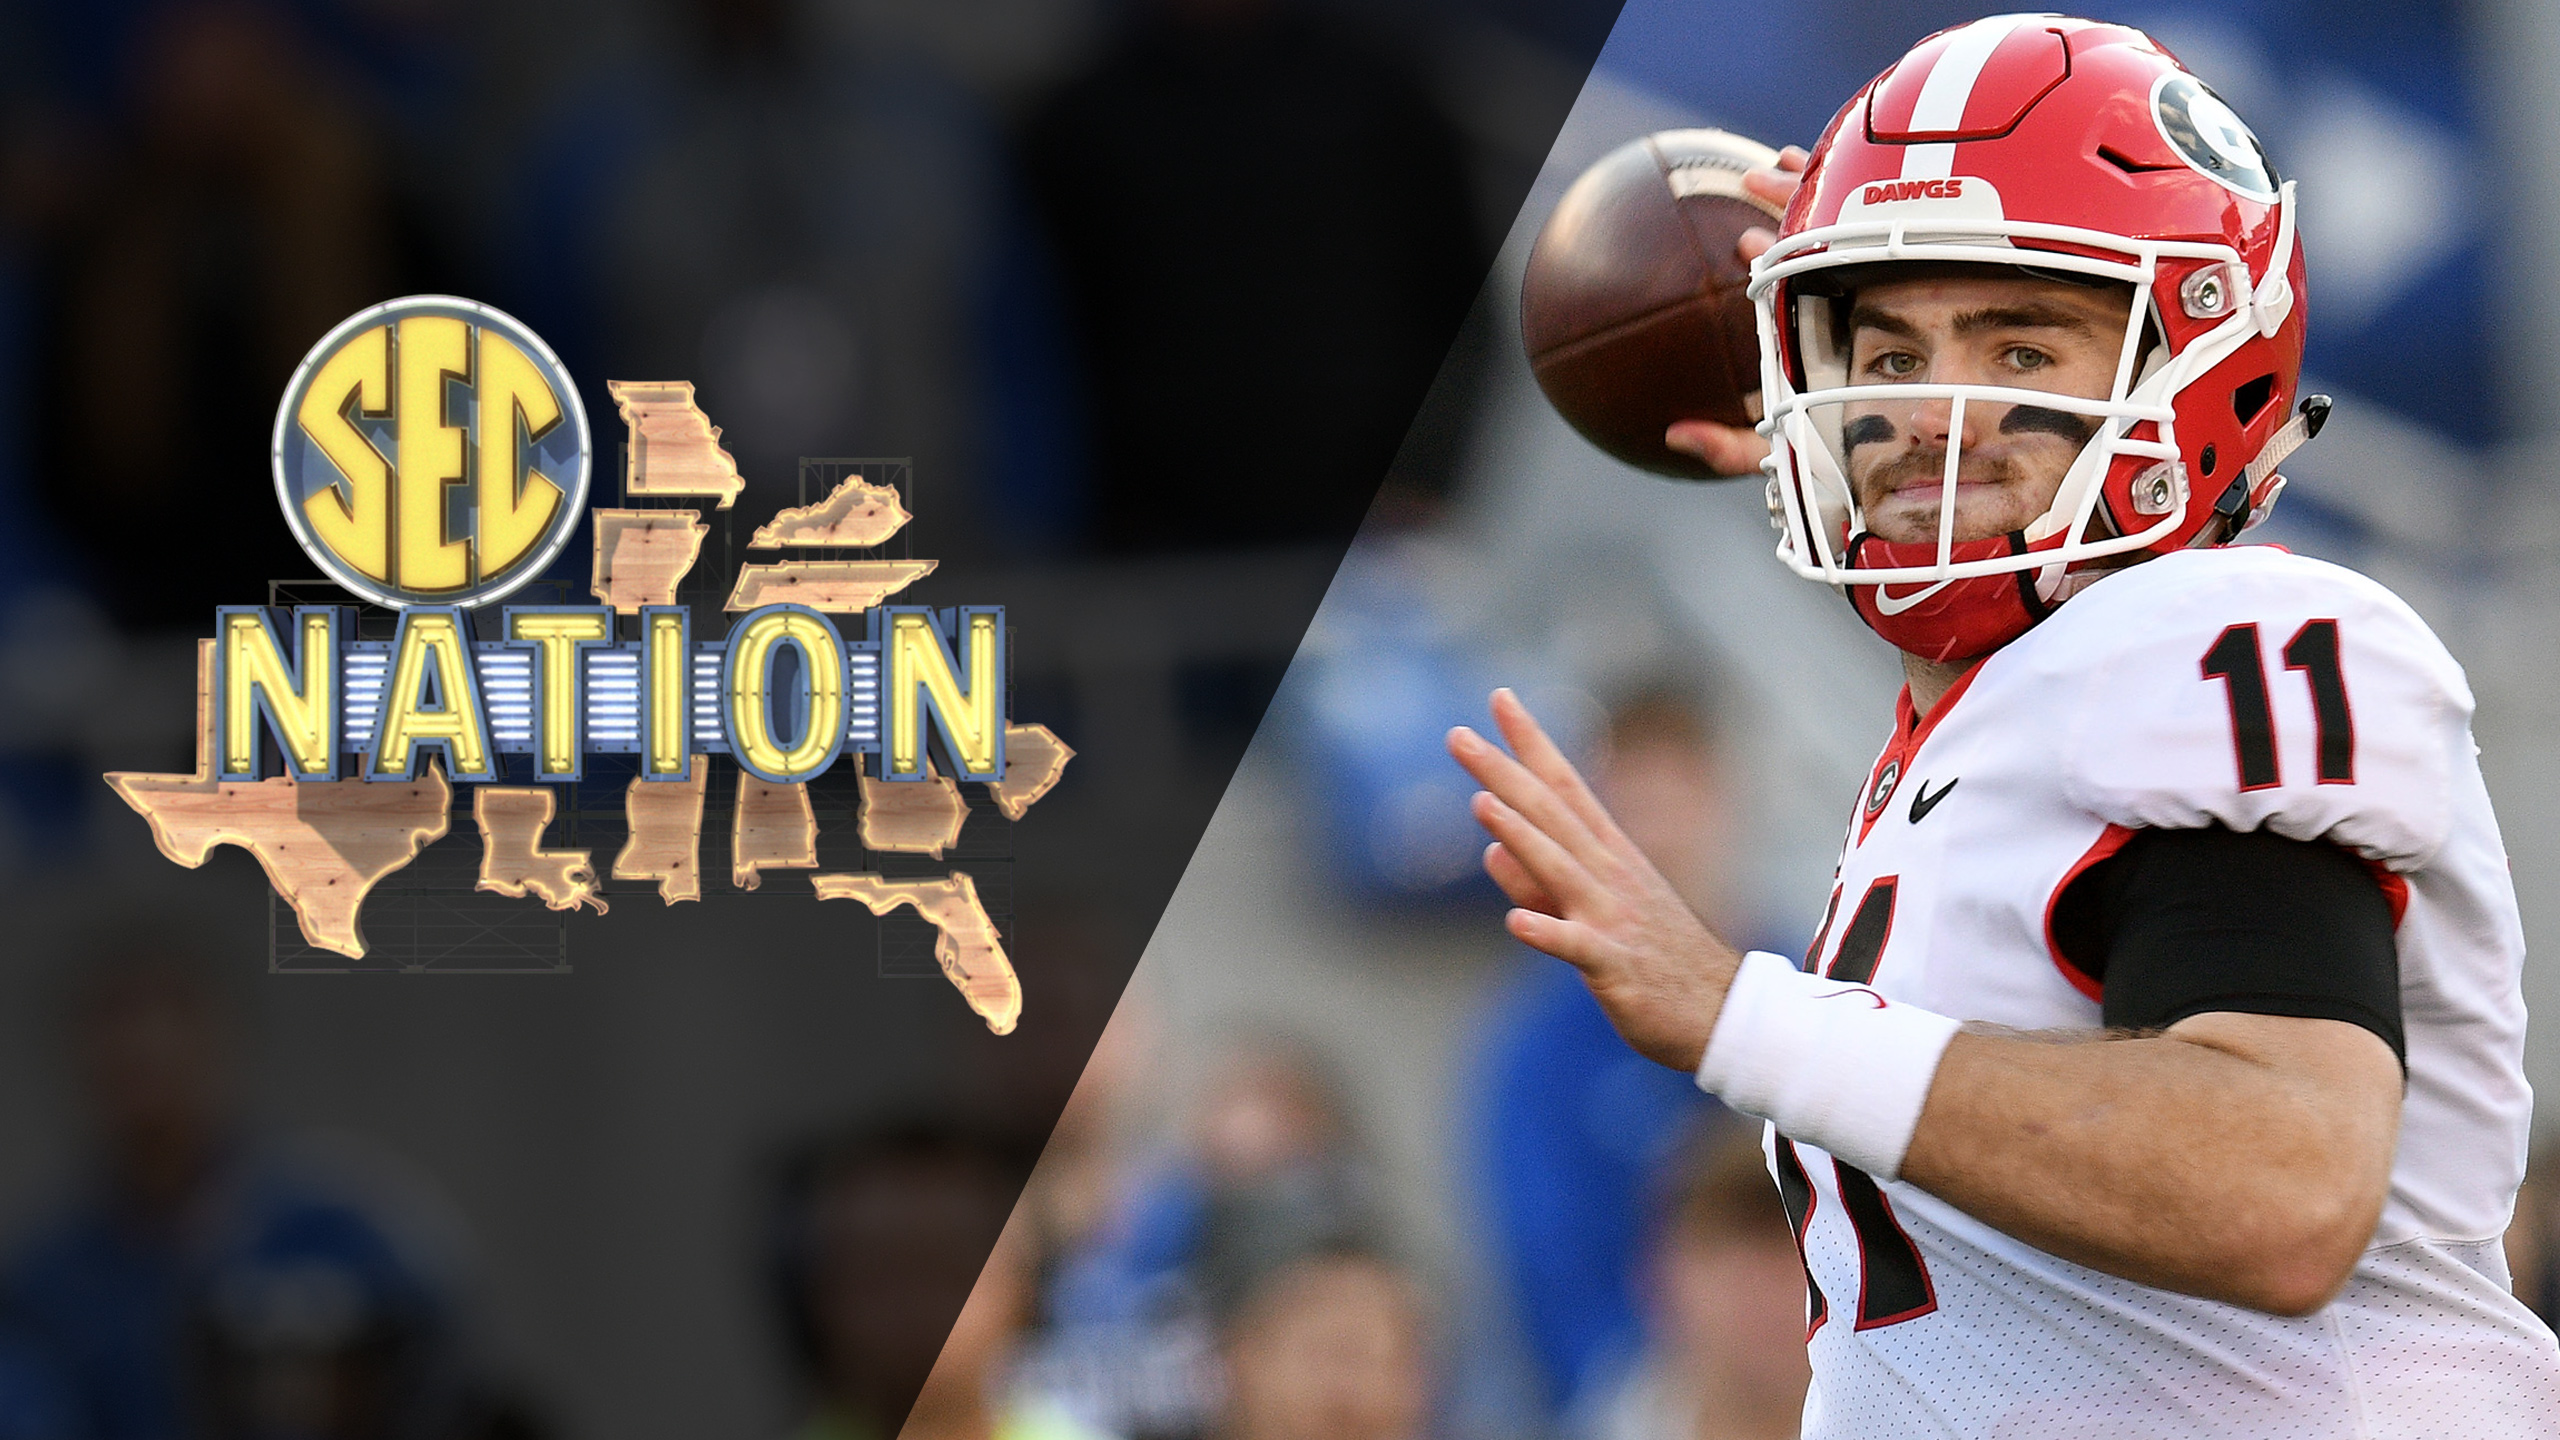 SEC Nation Presented by Regions Bank